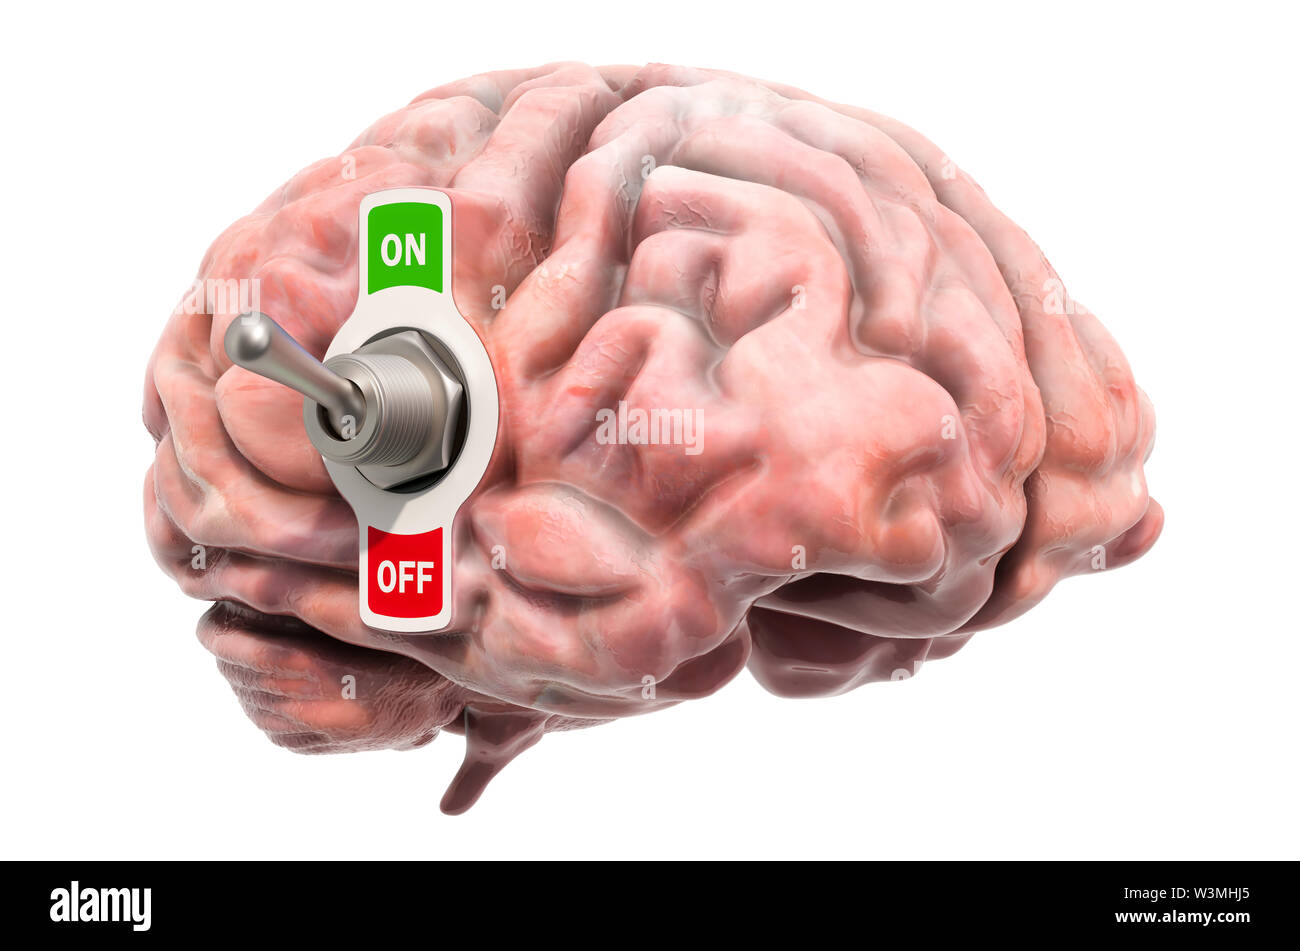 Brain with toggle switch on, 3D rendering isolated on white background - Stock Image